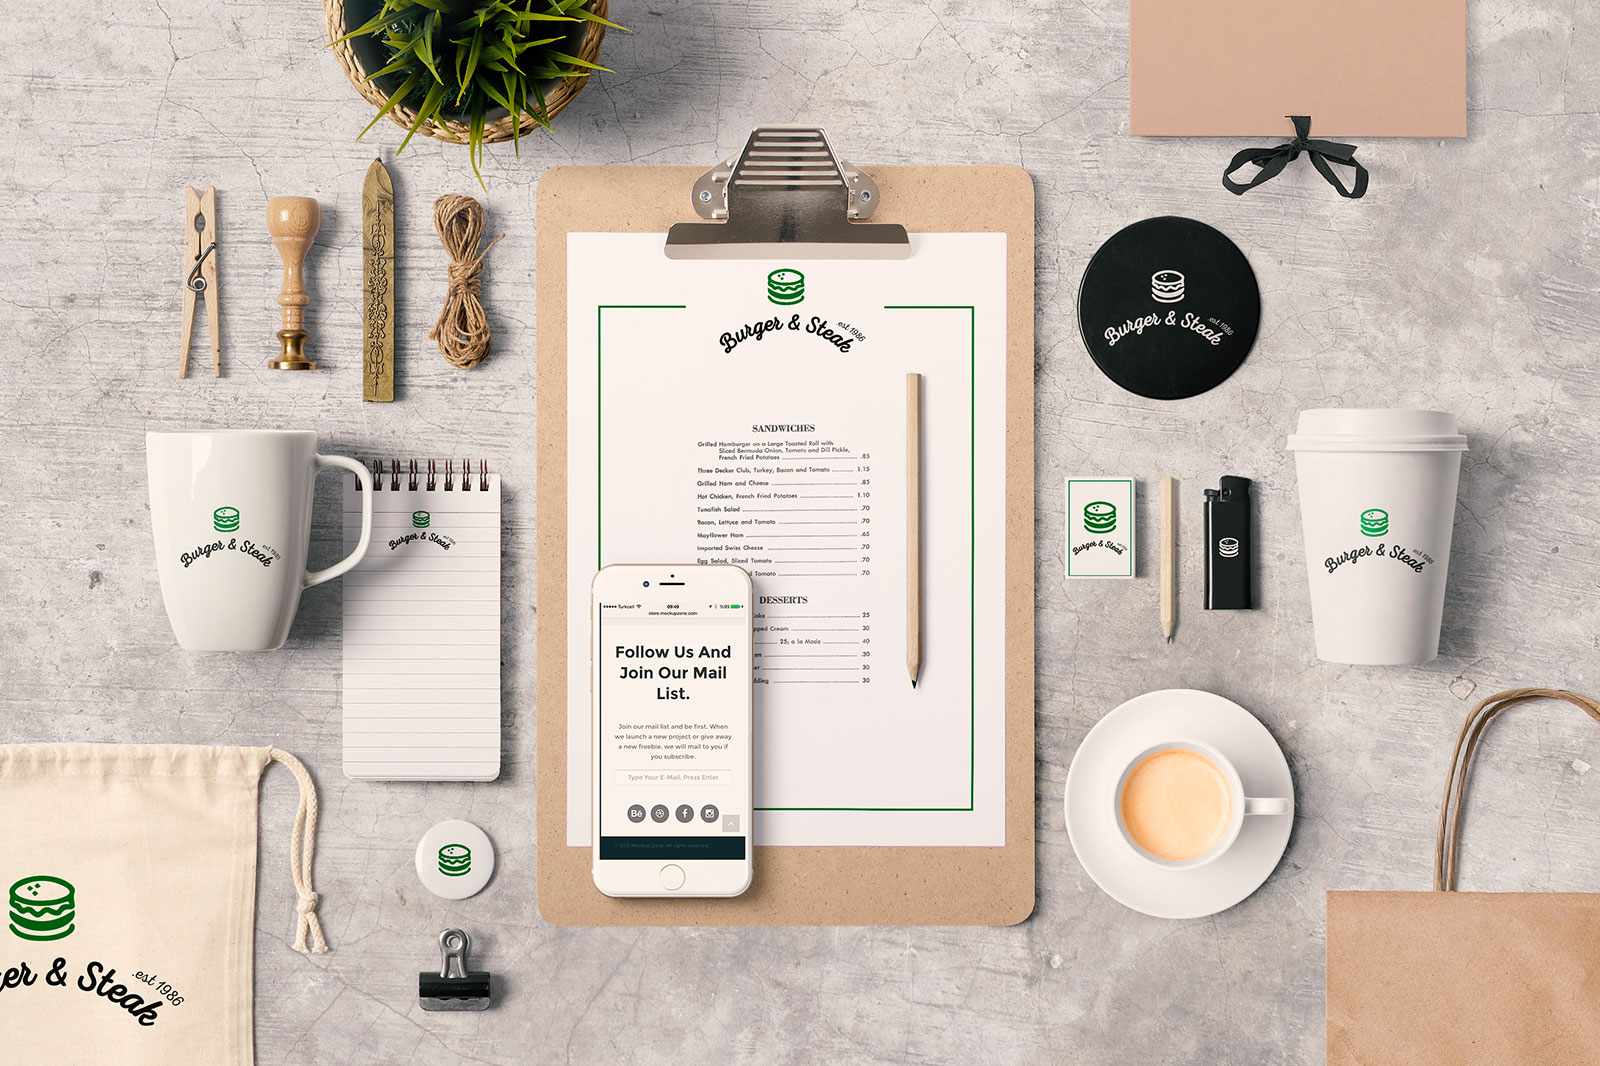 Free-Branding-Stationery-Hero-Image-Mockup-PSD-Set